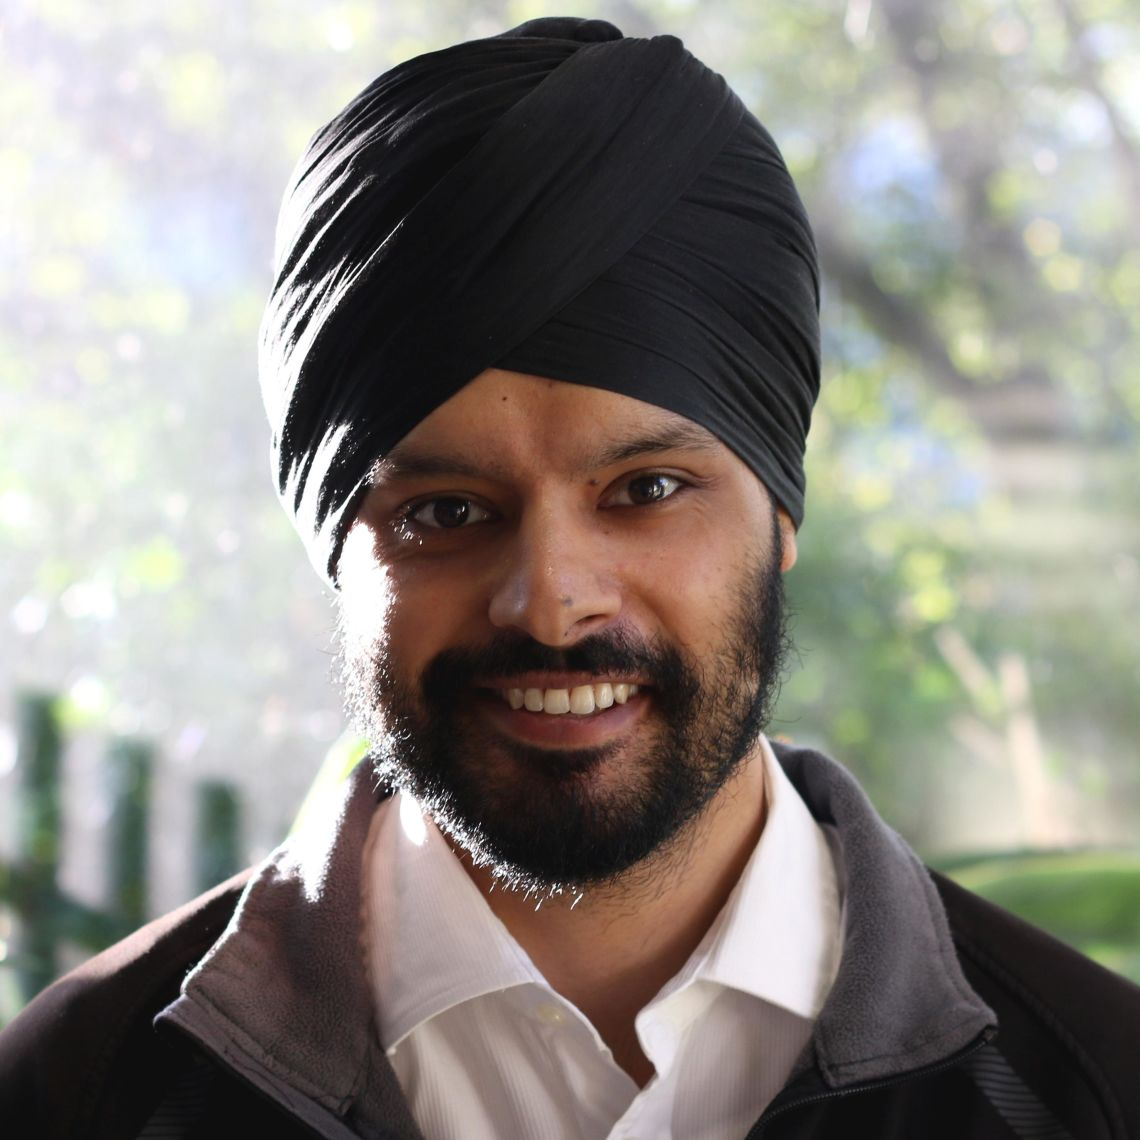 Congratulations to Dr @GurdeepMannu on winning the @ONSfocus Research Excellence Award 2020 for a study on early risk factors for #breastcancer patients 👏 👏   Read more ➡️  https://t.co/cTTb8gB87C  #BreastCancerAwarenessMonth @CR_UK @NHSDigital @OxfordBRC https://t.co/Hc1FAJagJK